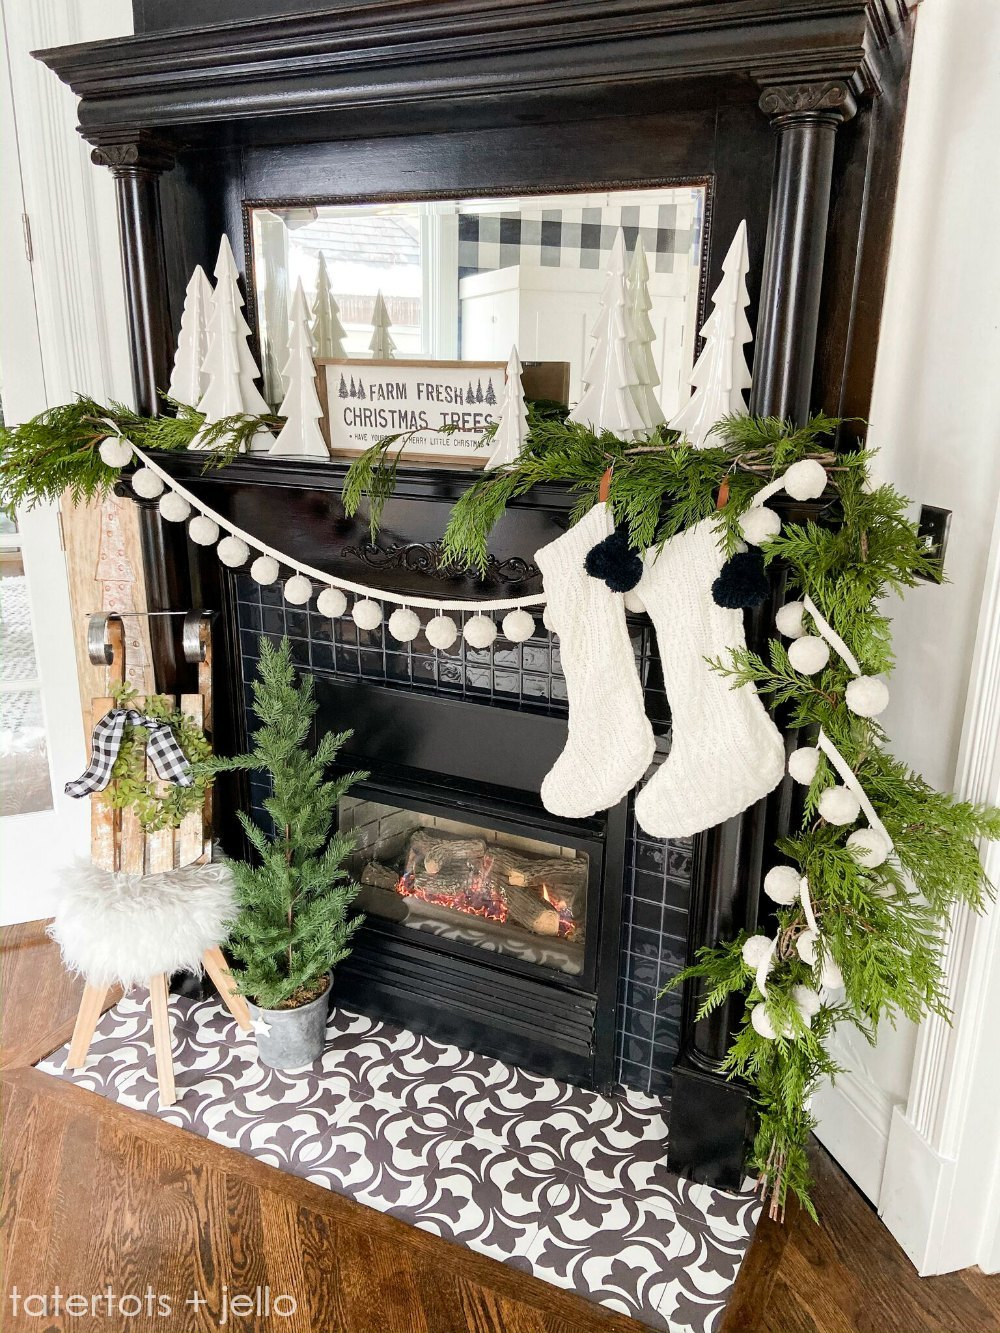 Festive Christmas Decorating Ideas - love this antique fireplace mantel with fresh garland and pom poms #christmas #christmasmantel #christmasdecor #vintagechristmas #christmastrees #fireplace #antiquemantel